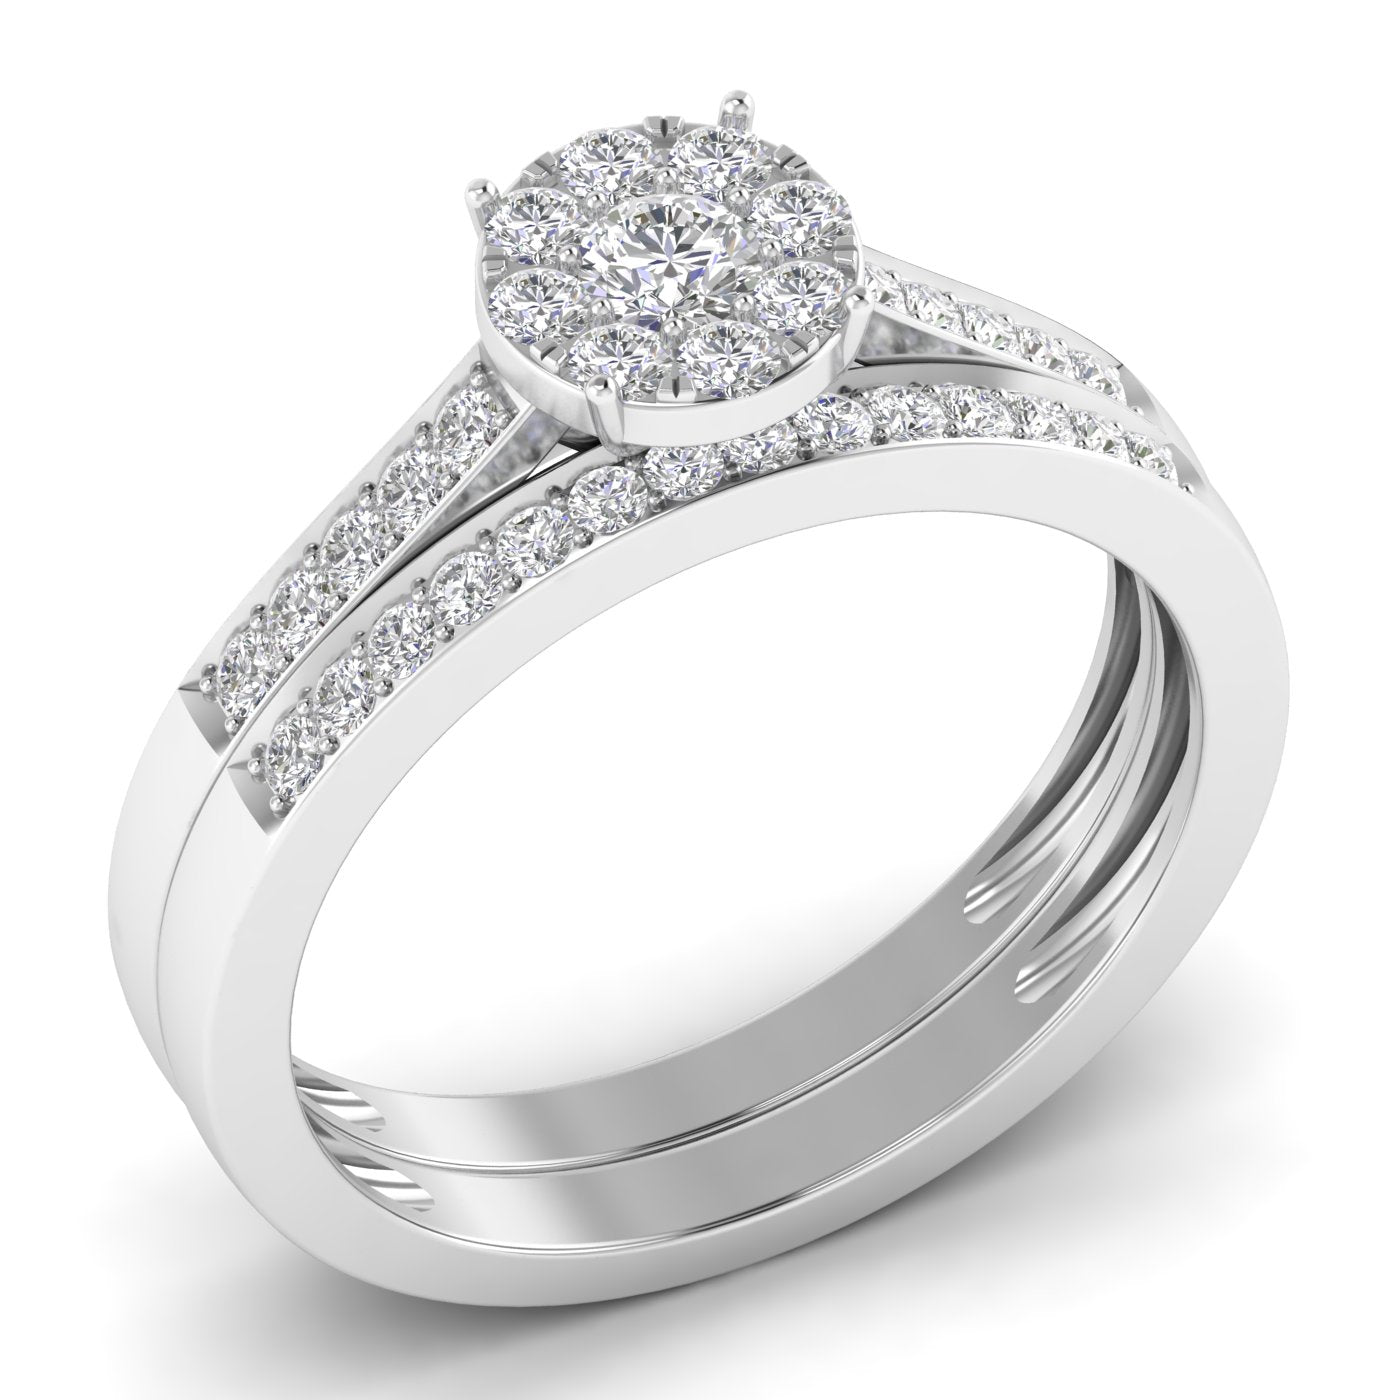 Fehu Jewel Bridal Halo Ring Set With 0.51ct Natural Diamonds.